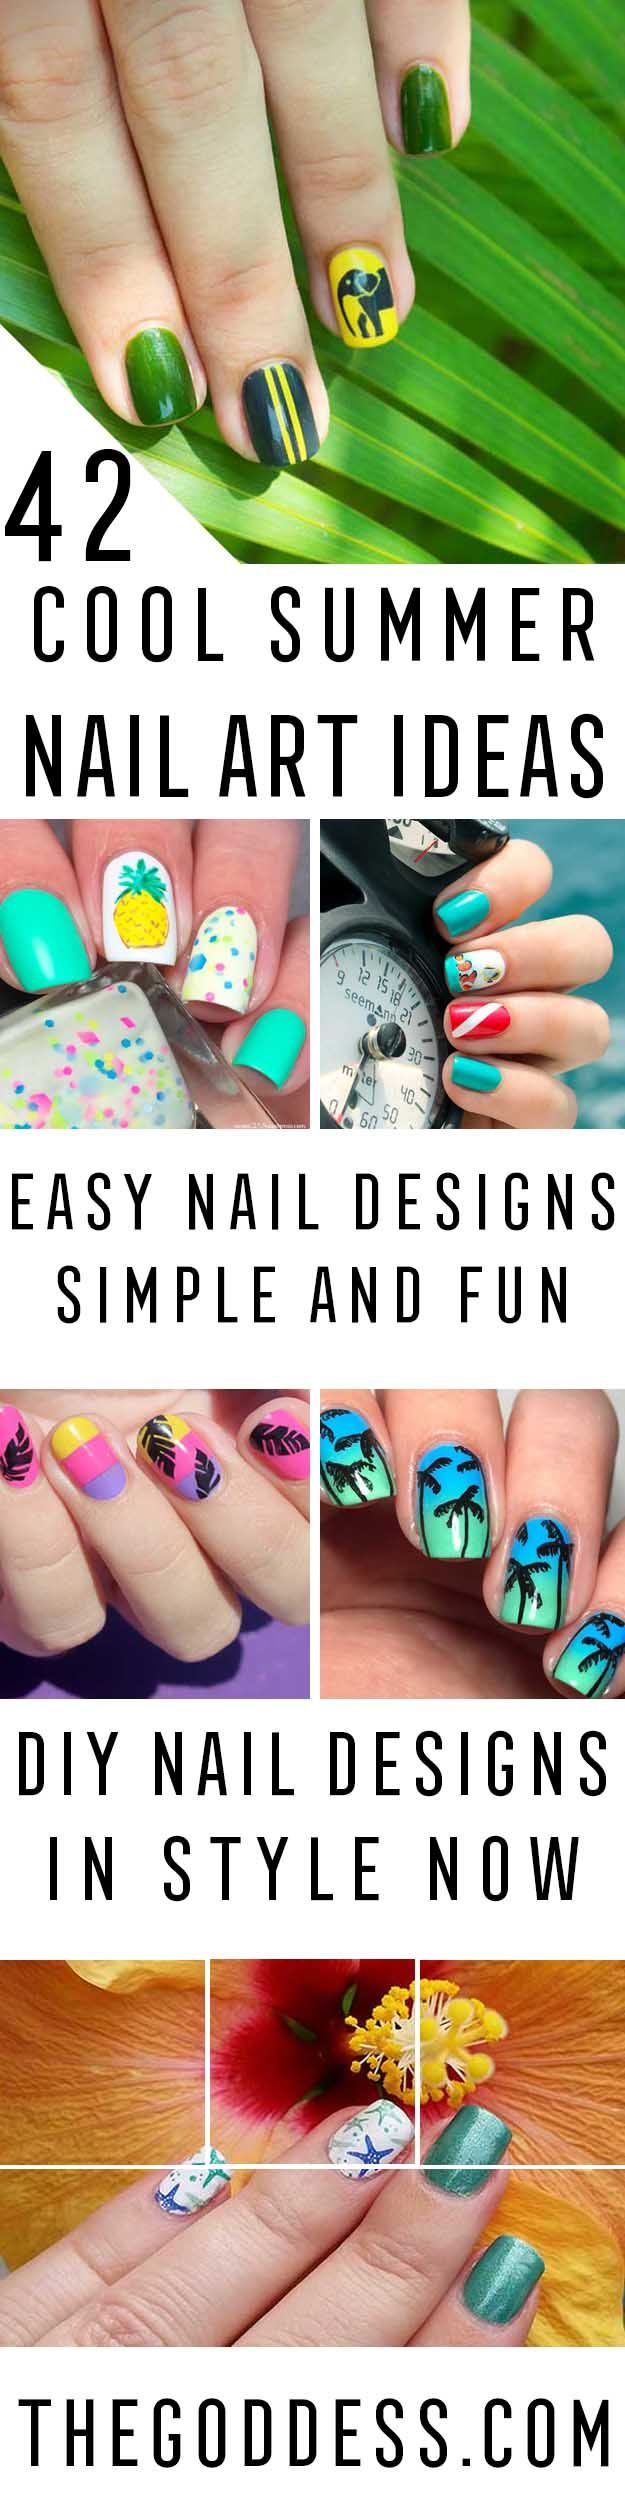 The 44 best 42 Cool Summer Nail Art Ideas images on Pinterest   Easy ...